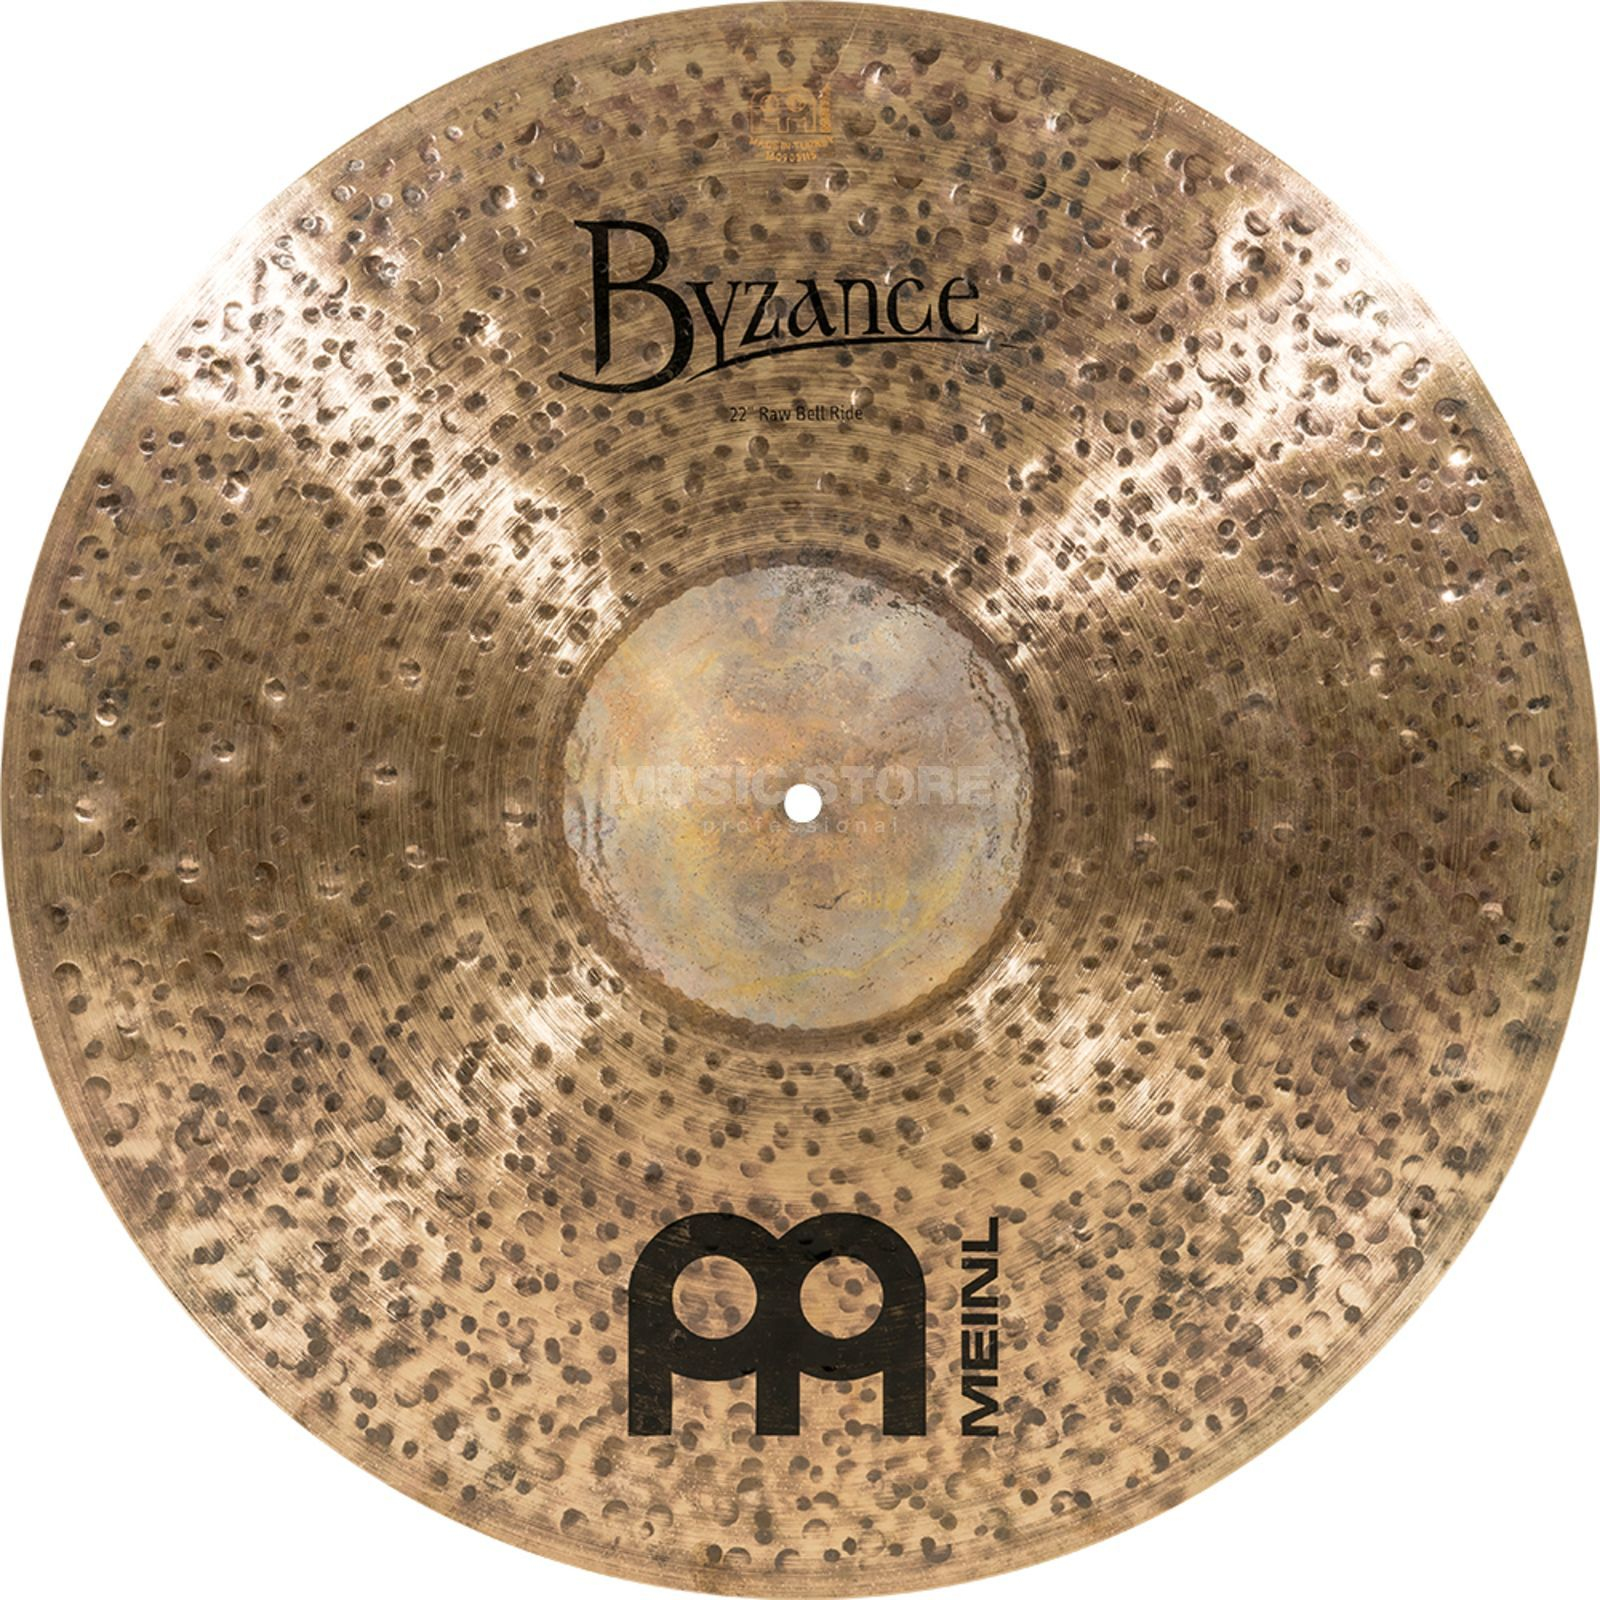 "Meinl Byzance Raw Bell Ride 22"", B22RBR, Dark Finish Produktbillede"